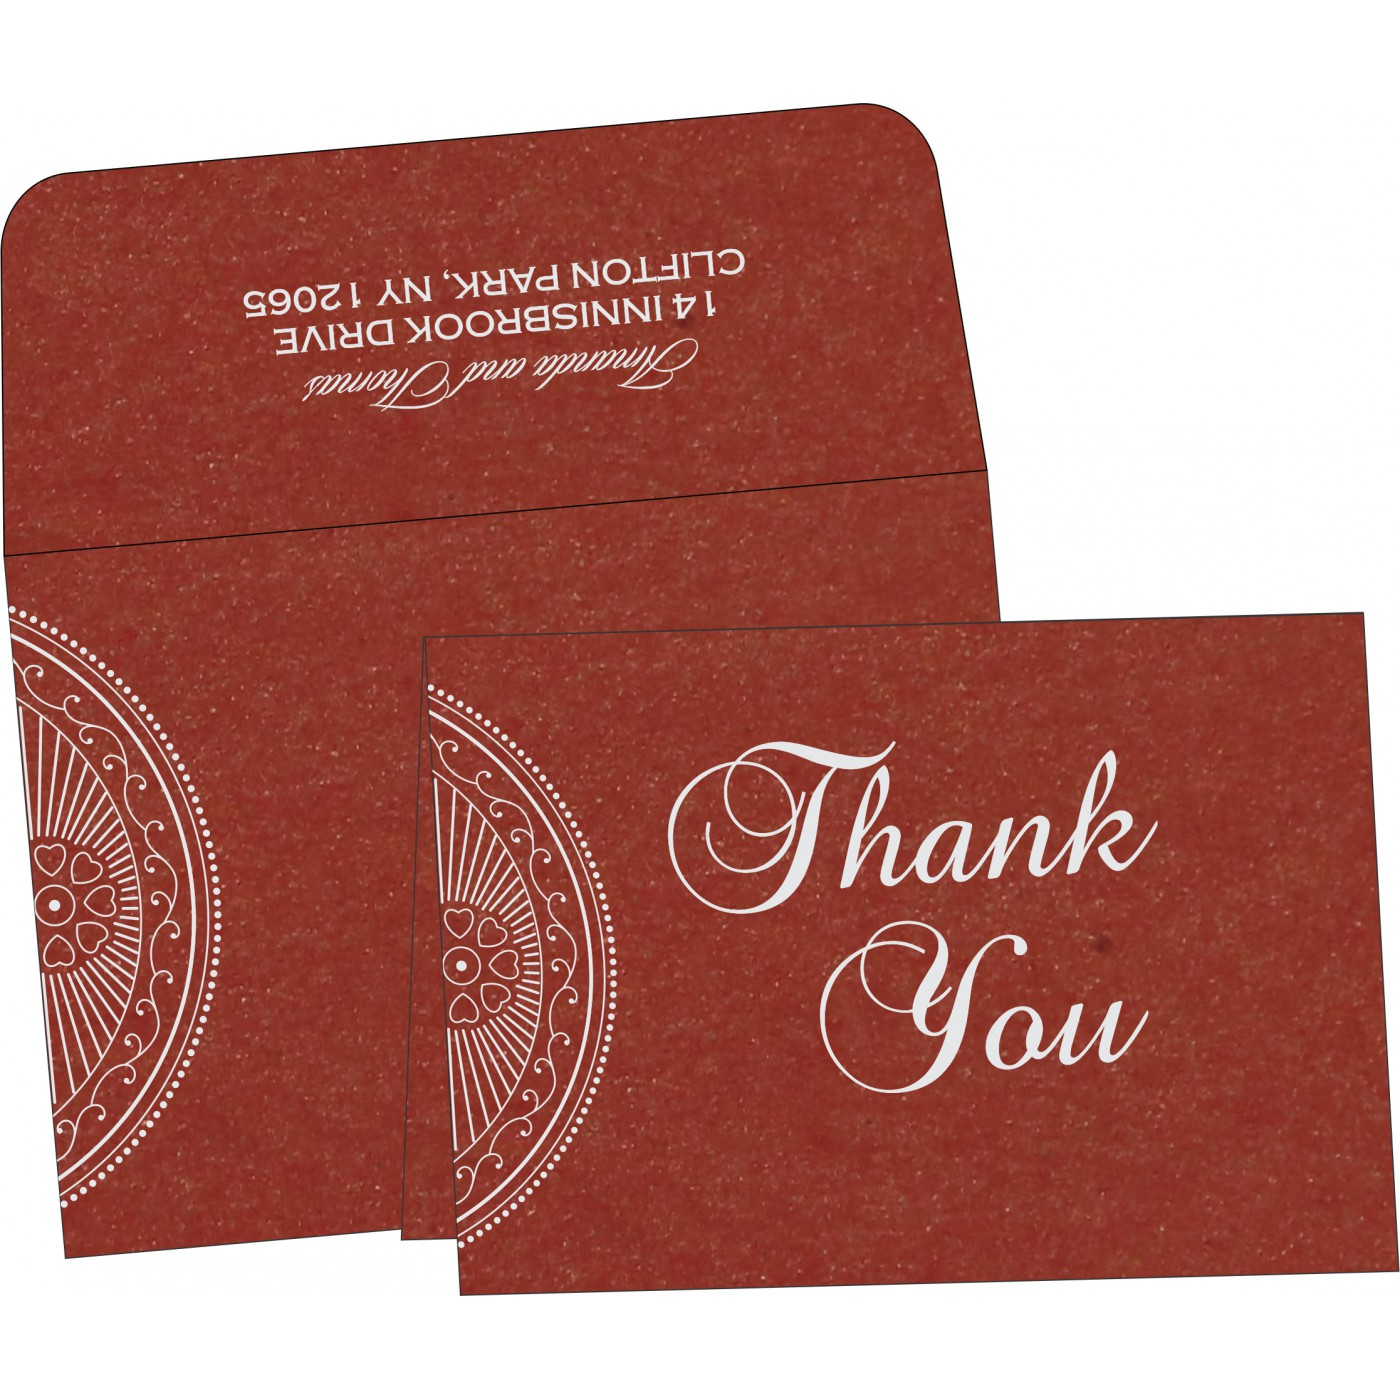 Thank You Cards : TYC-8230C - 123WeddingCards